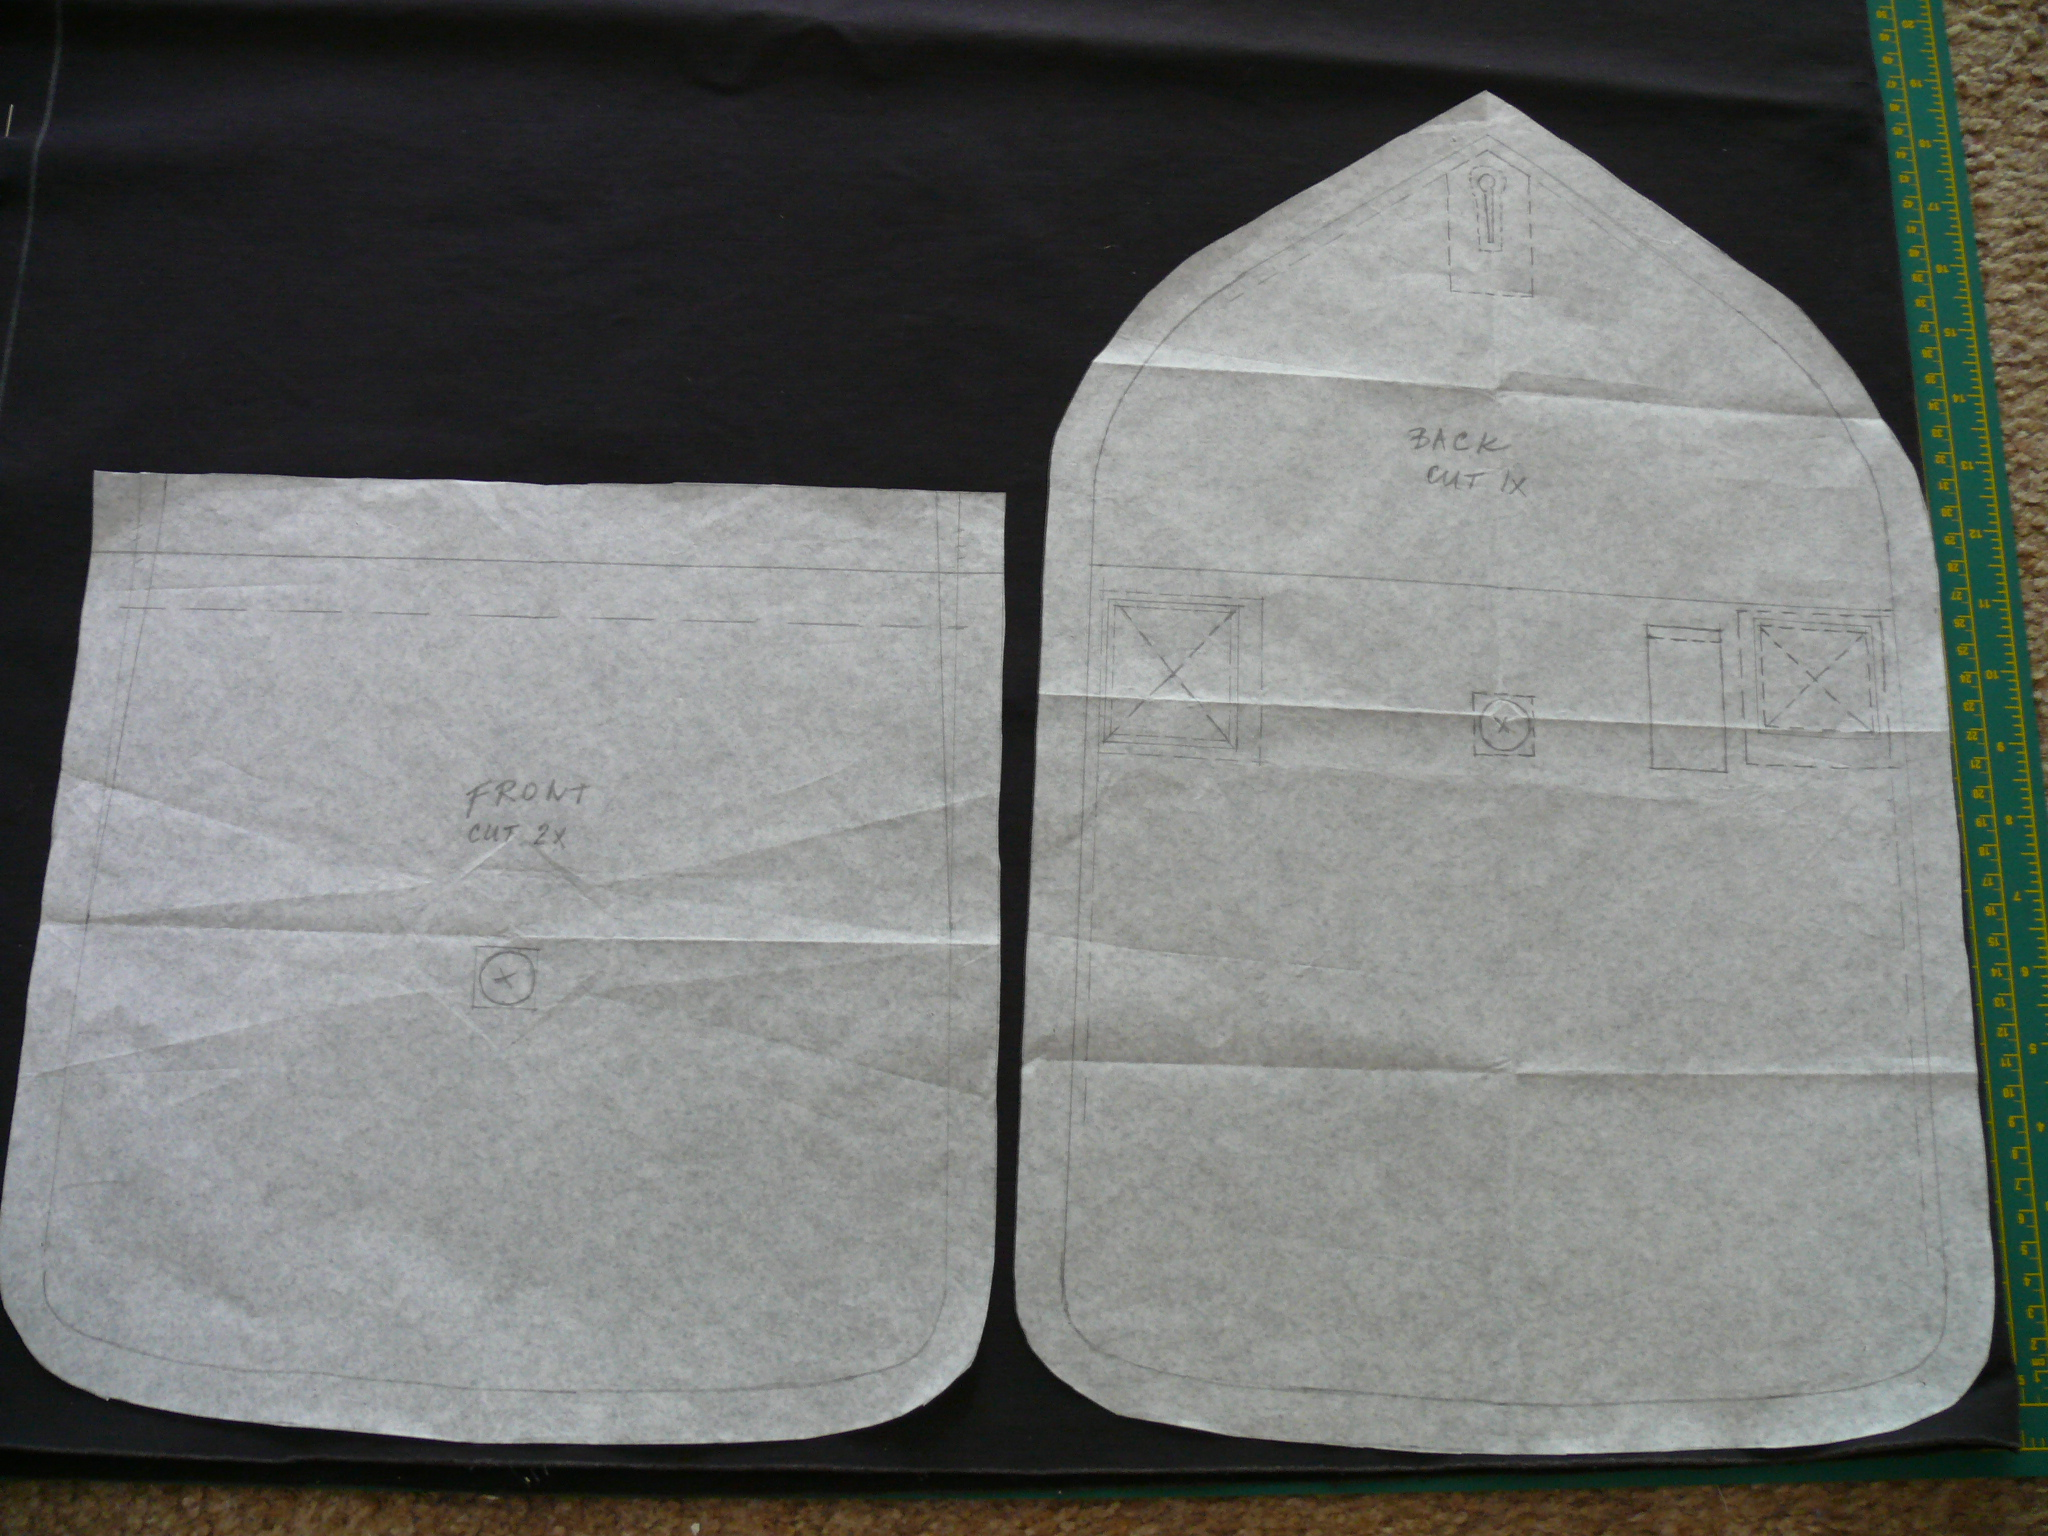 You need two of the smaller front pieces, and one of the back piece which has a foldover extension.